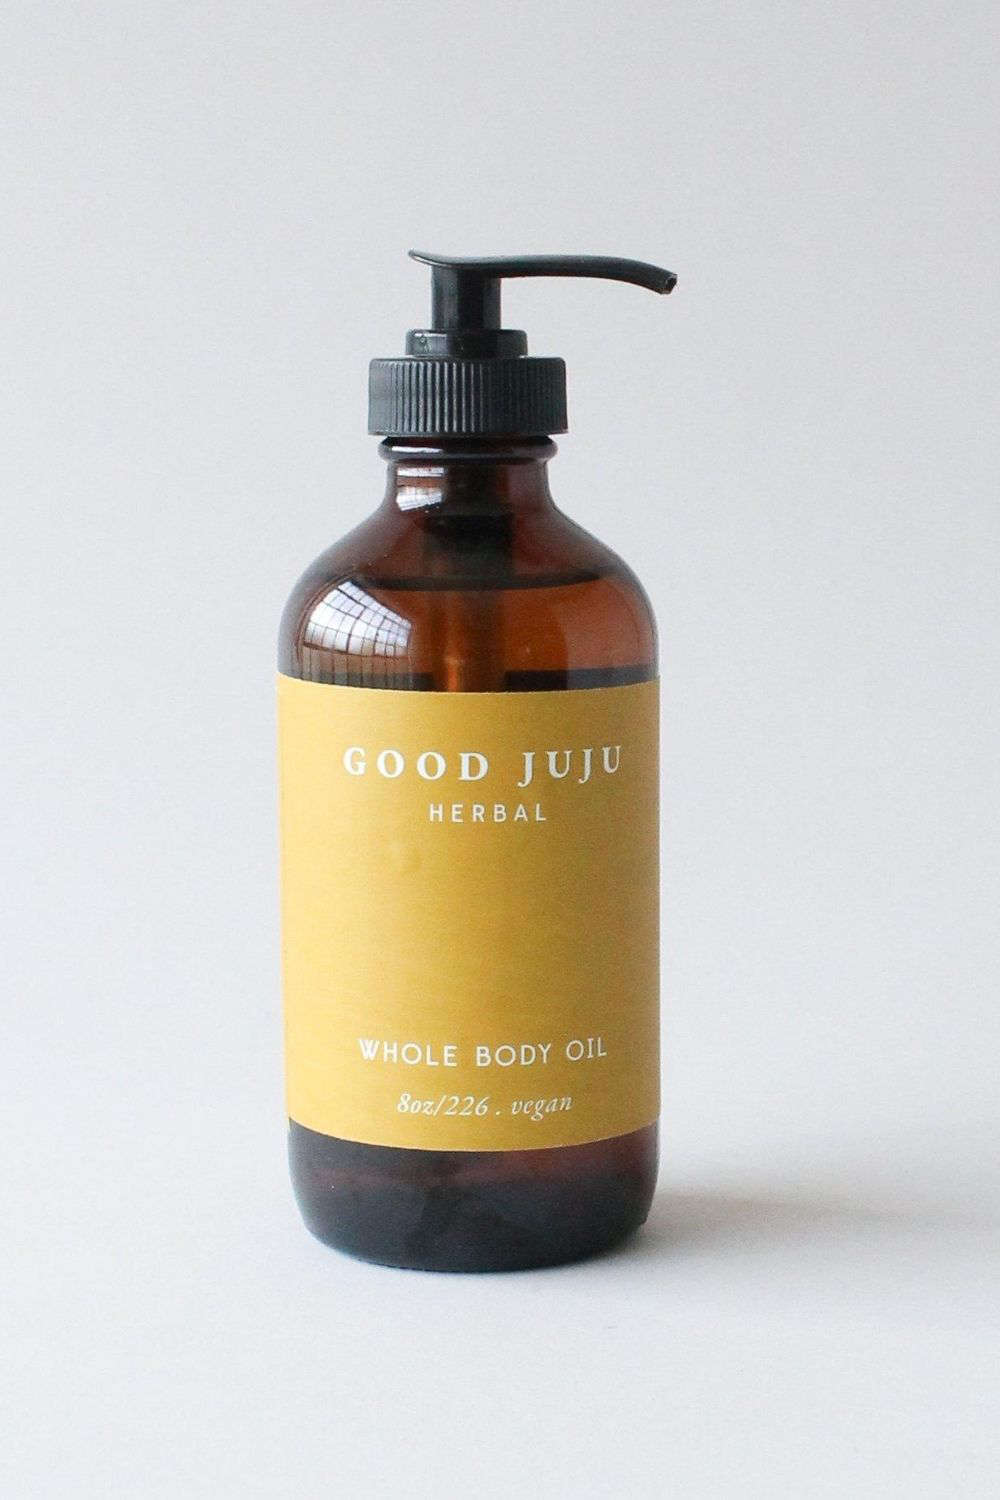 It's pretty important then to to find a cruelty free moisturizer that works for both you and the environment. Which is why we've made a list of our favorites. All in support of positive, healthy and environmentally conscious choices when it comes to buying the best body care products. Image by Good Juju #crueltyfreemoisturizer #sustainablejungle